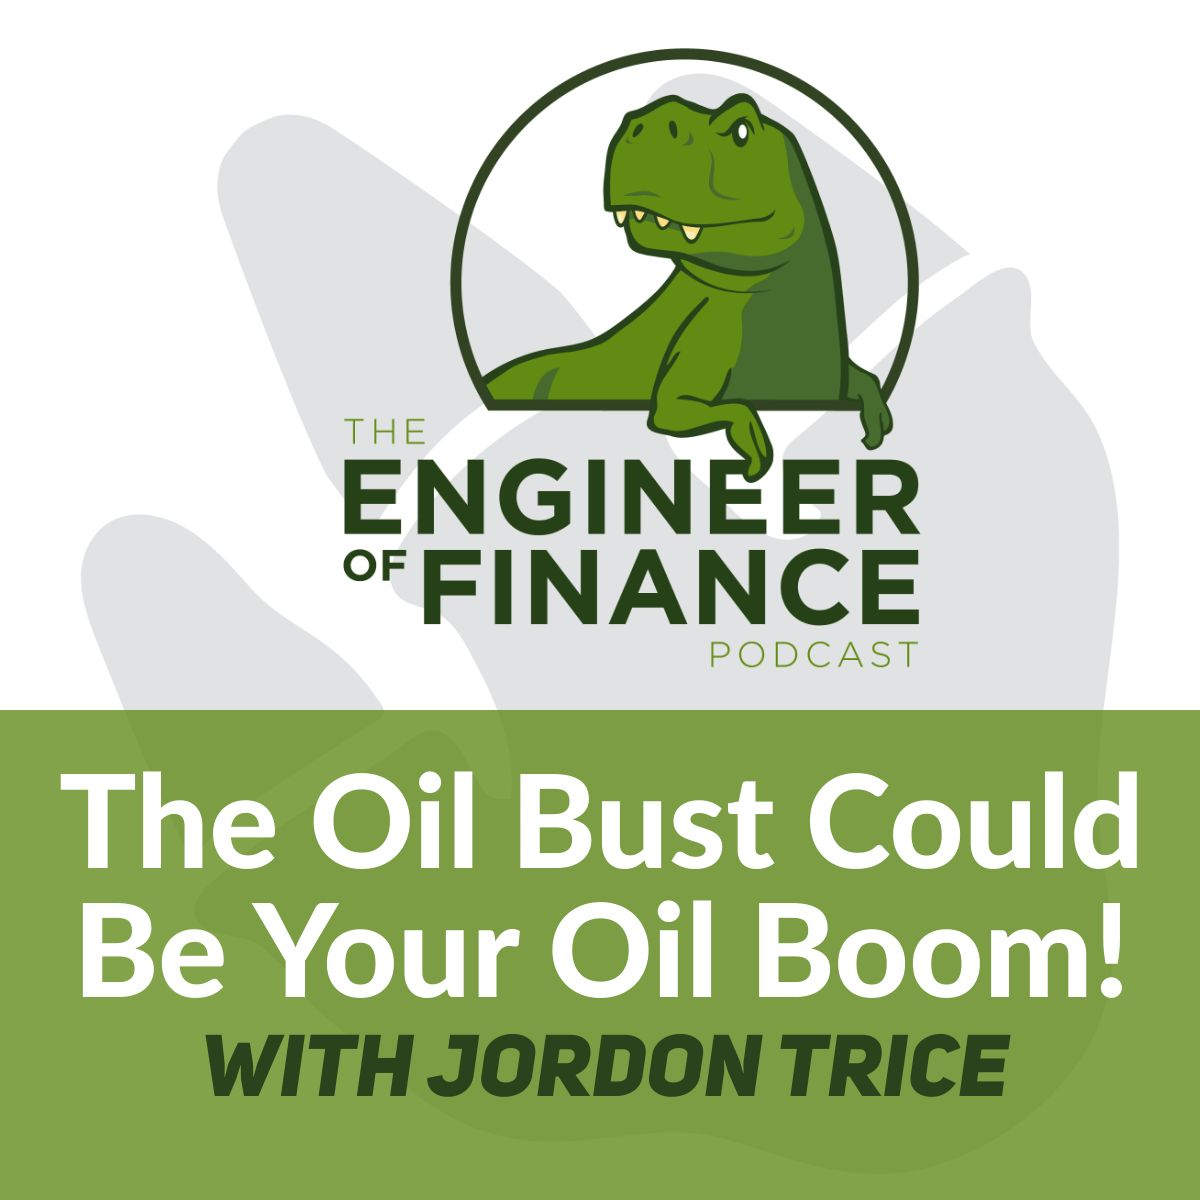 The Oil Bust Could Be Your Oil Boom! with Jordon Trice – Episode 117